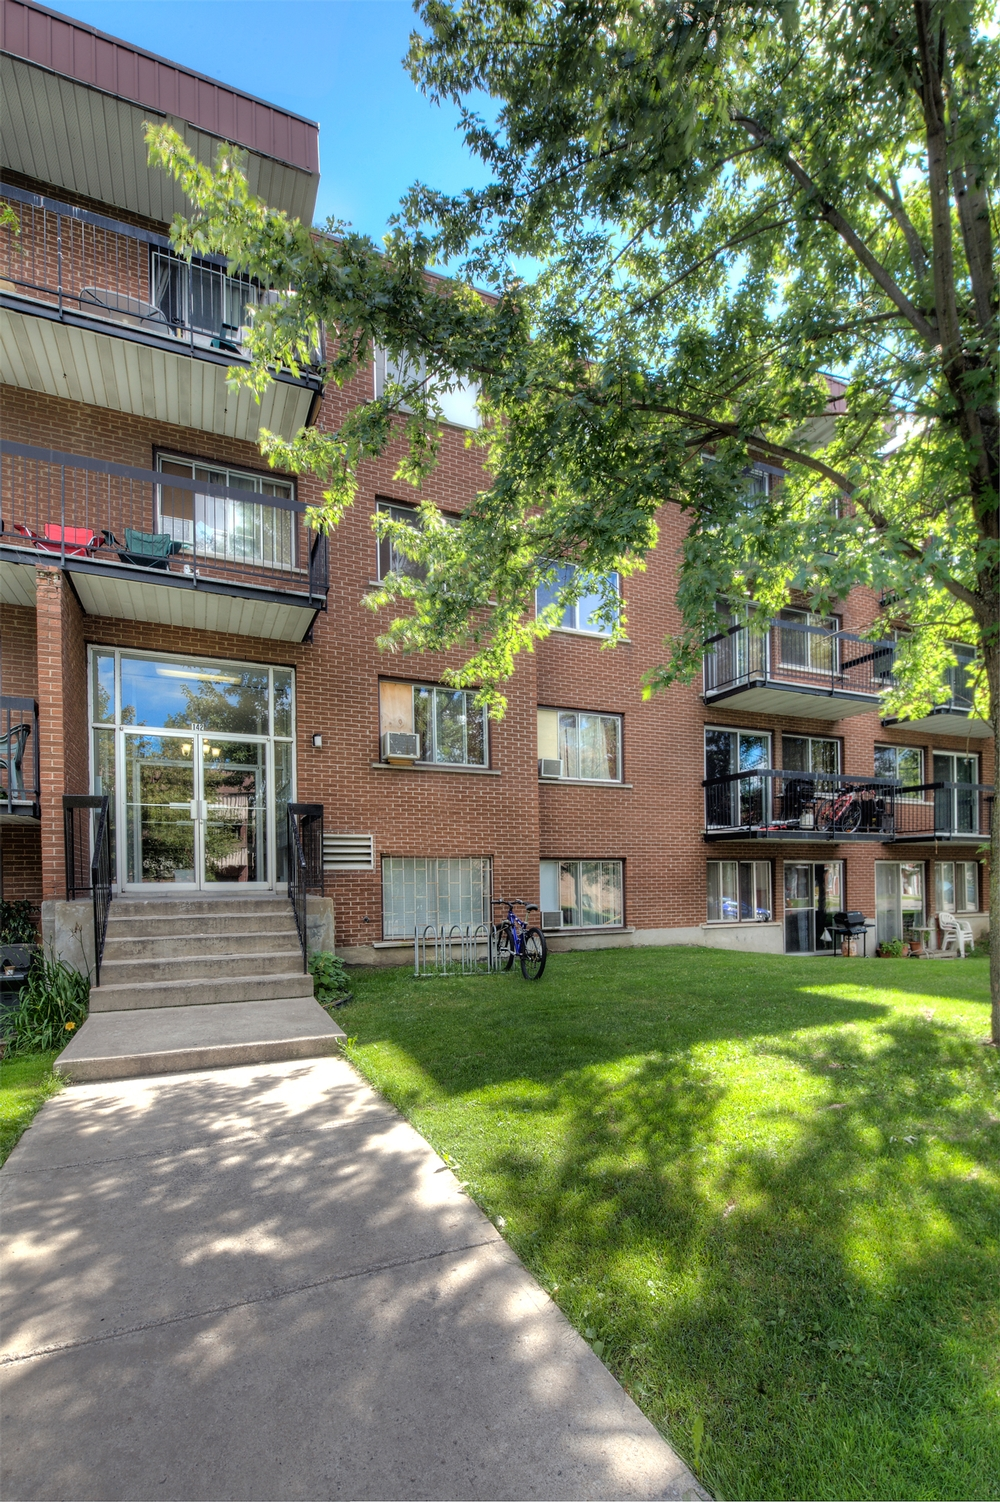 1 bedroom Apartments for rent in Chateauguay at Pasteur - Photo 03 - RentQuebecApartments – L9511